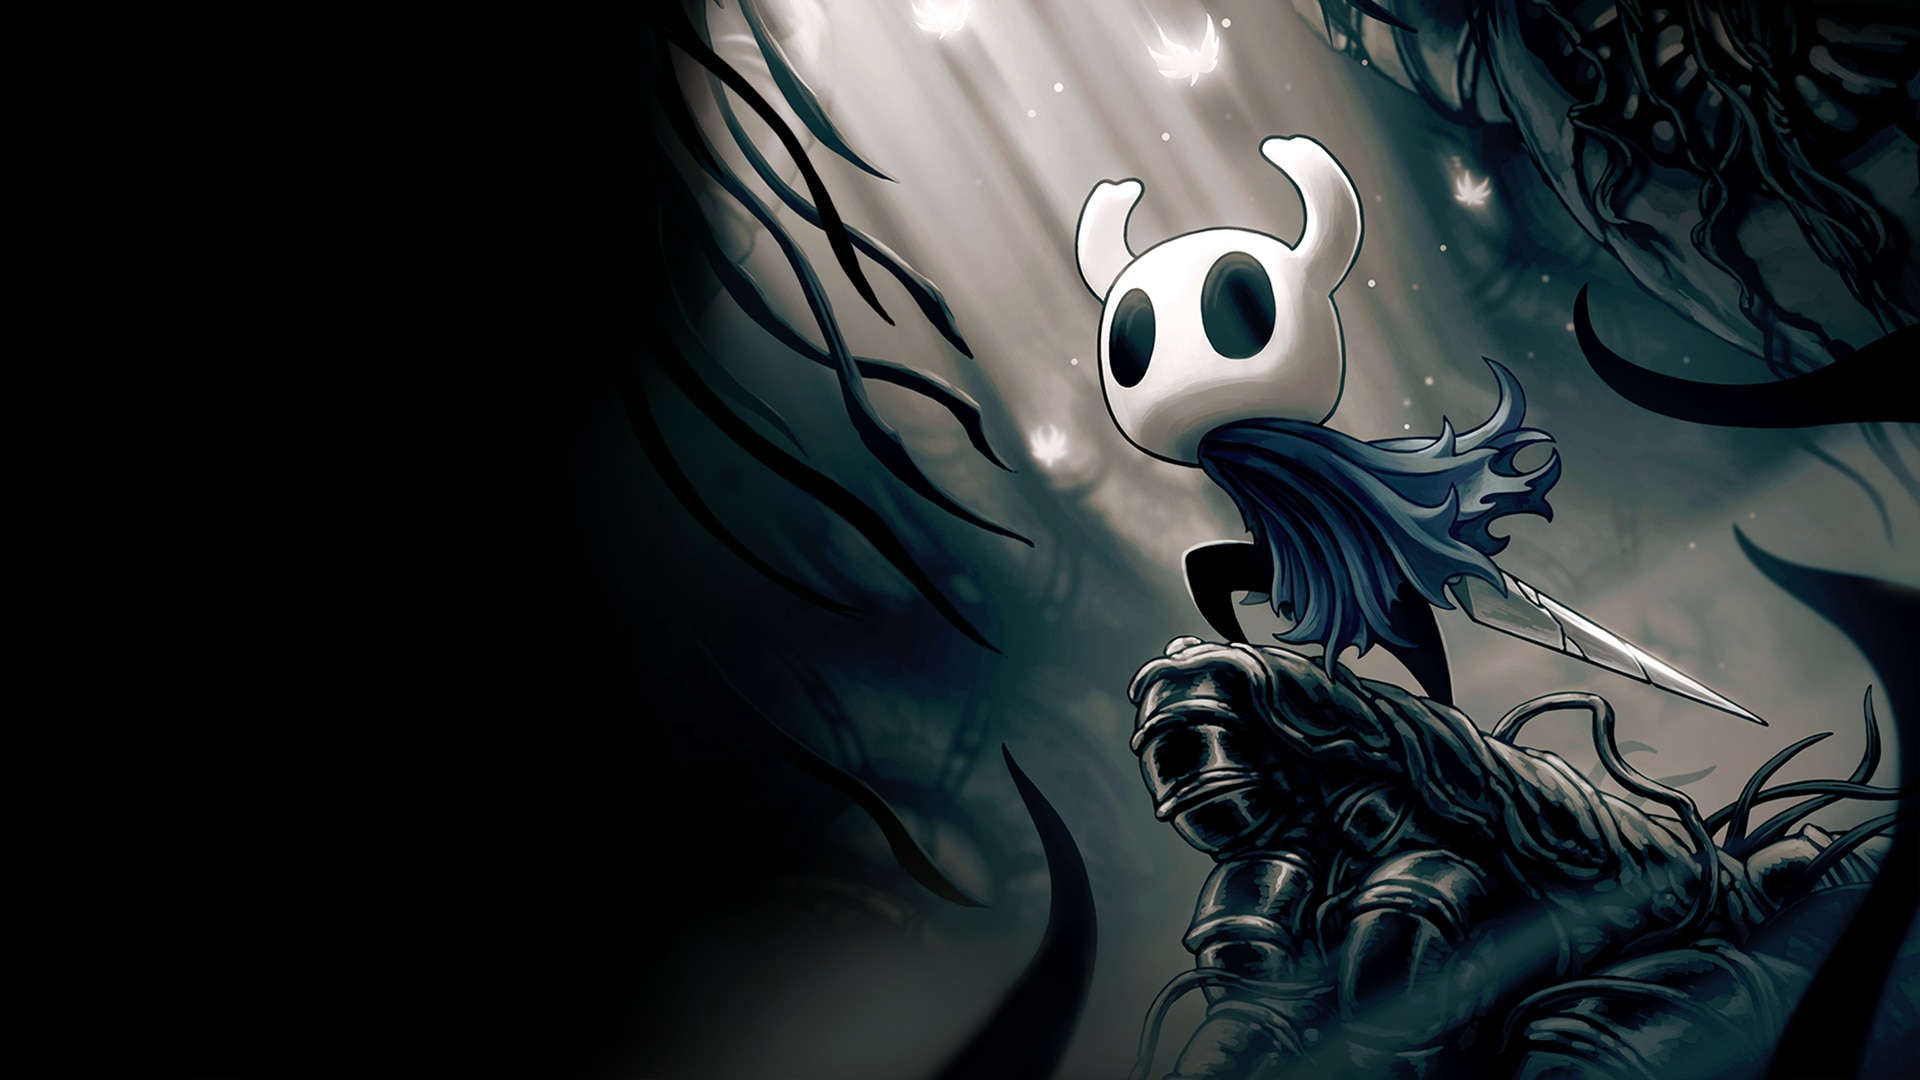 Hollow Knight (English/Chinese/Korean/Japanese Ver.)